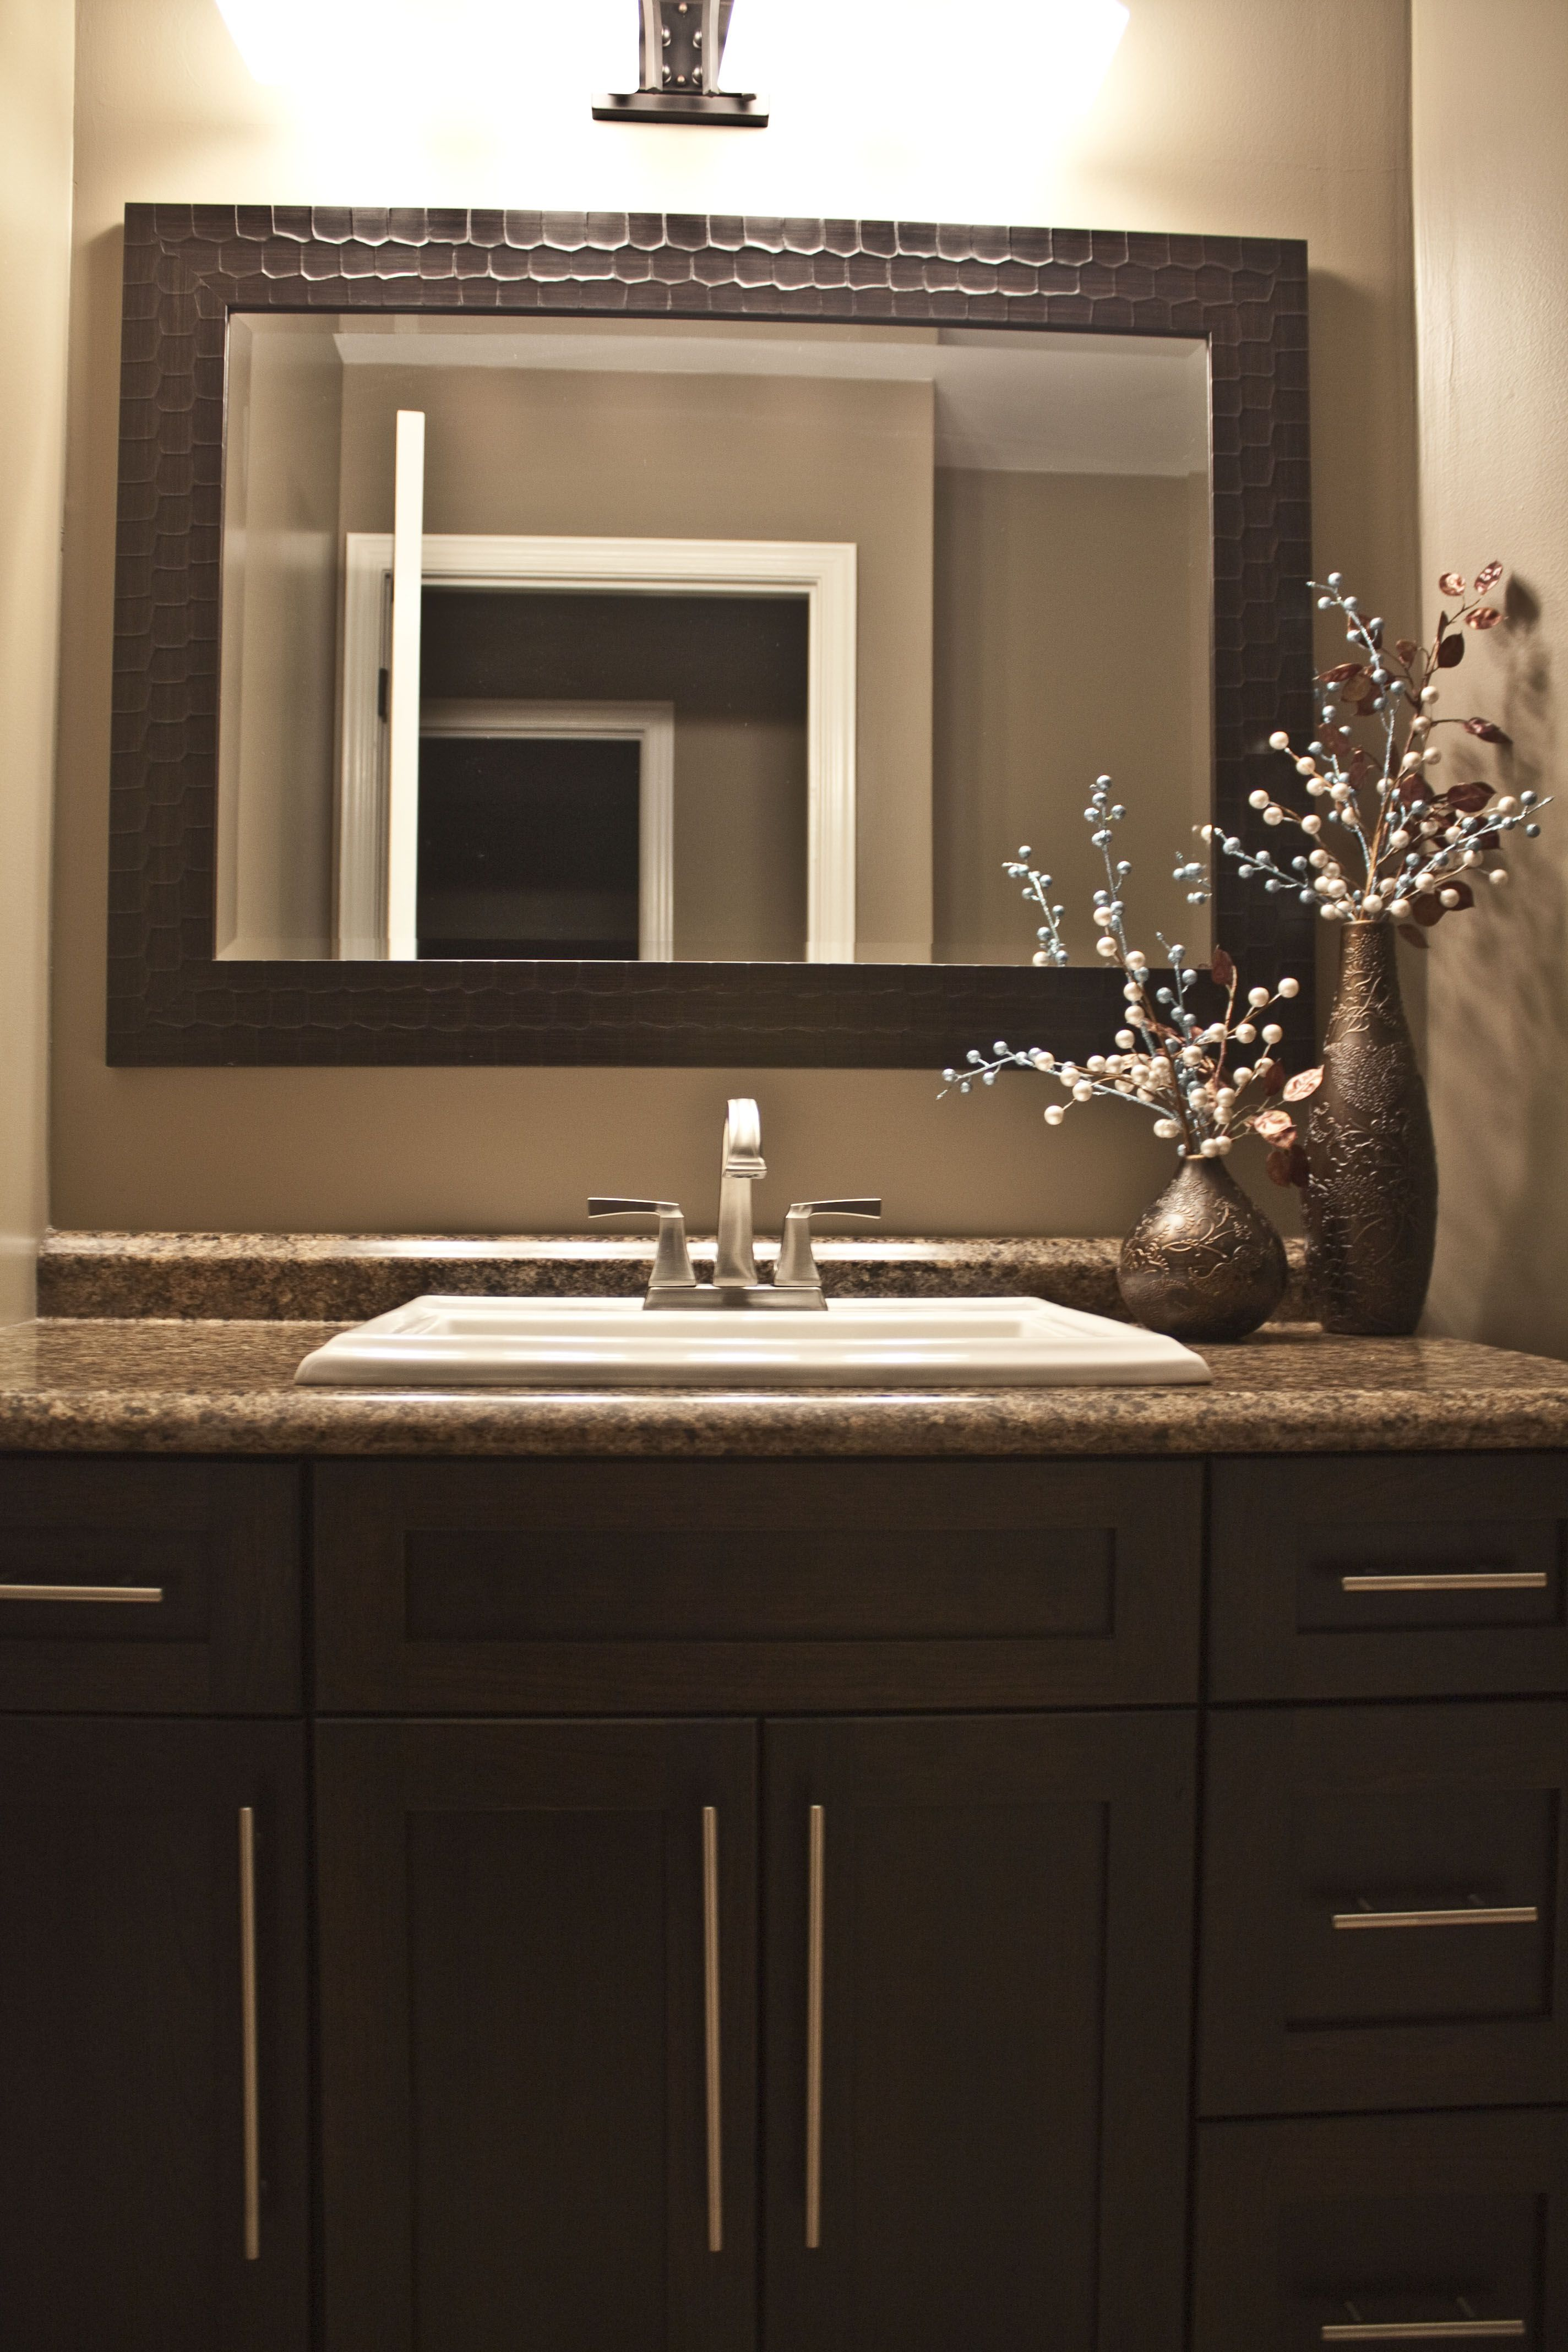 How To Paint Bathroom Cabinets Espresso espresso brown shaker style bathroom vanity with a leather look